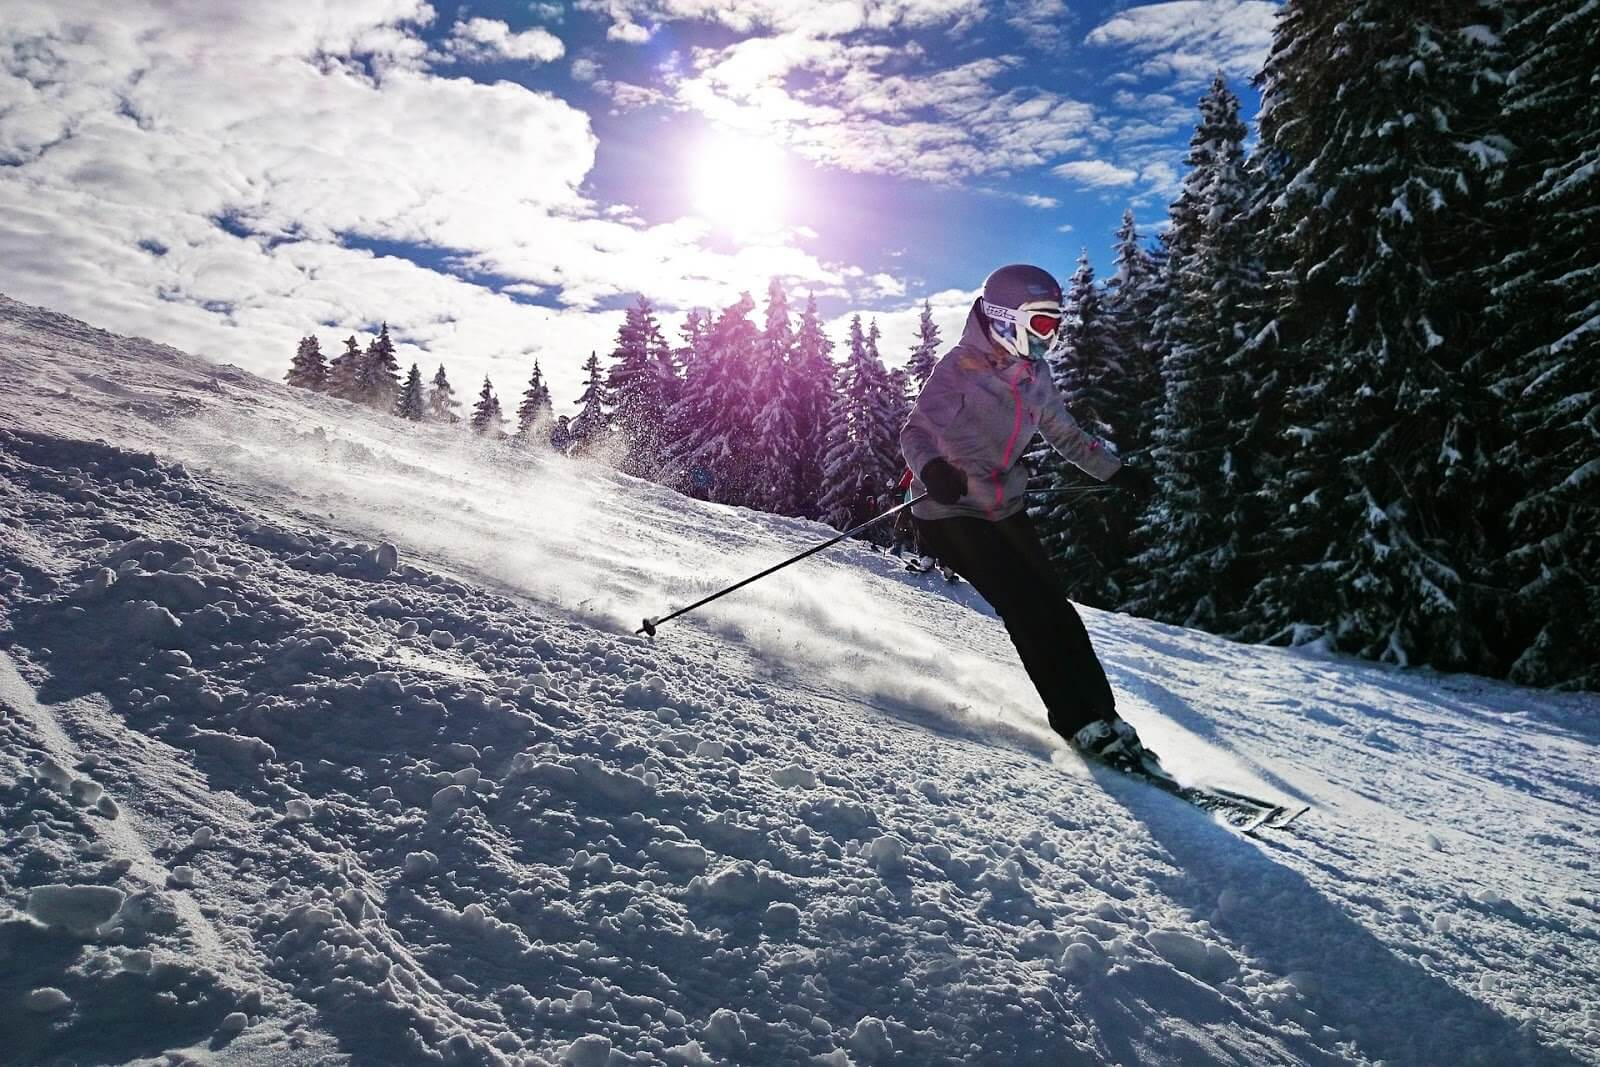 Jobs That Allow You To Travel: Ski Instructor